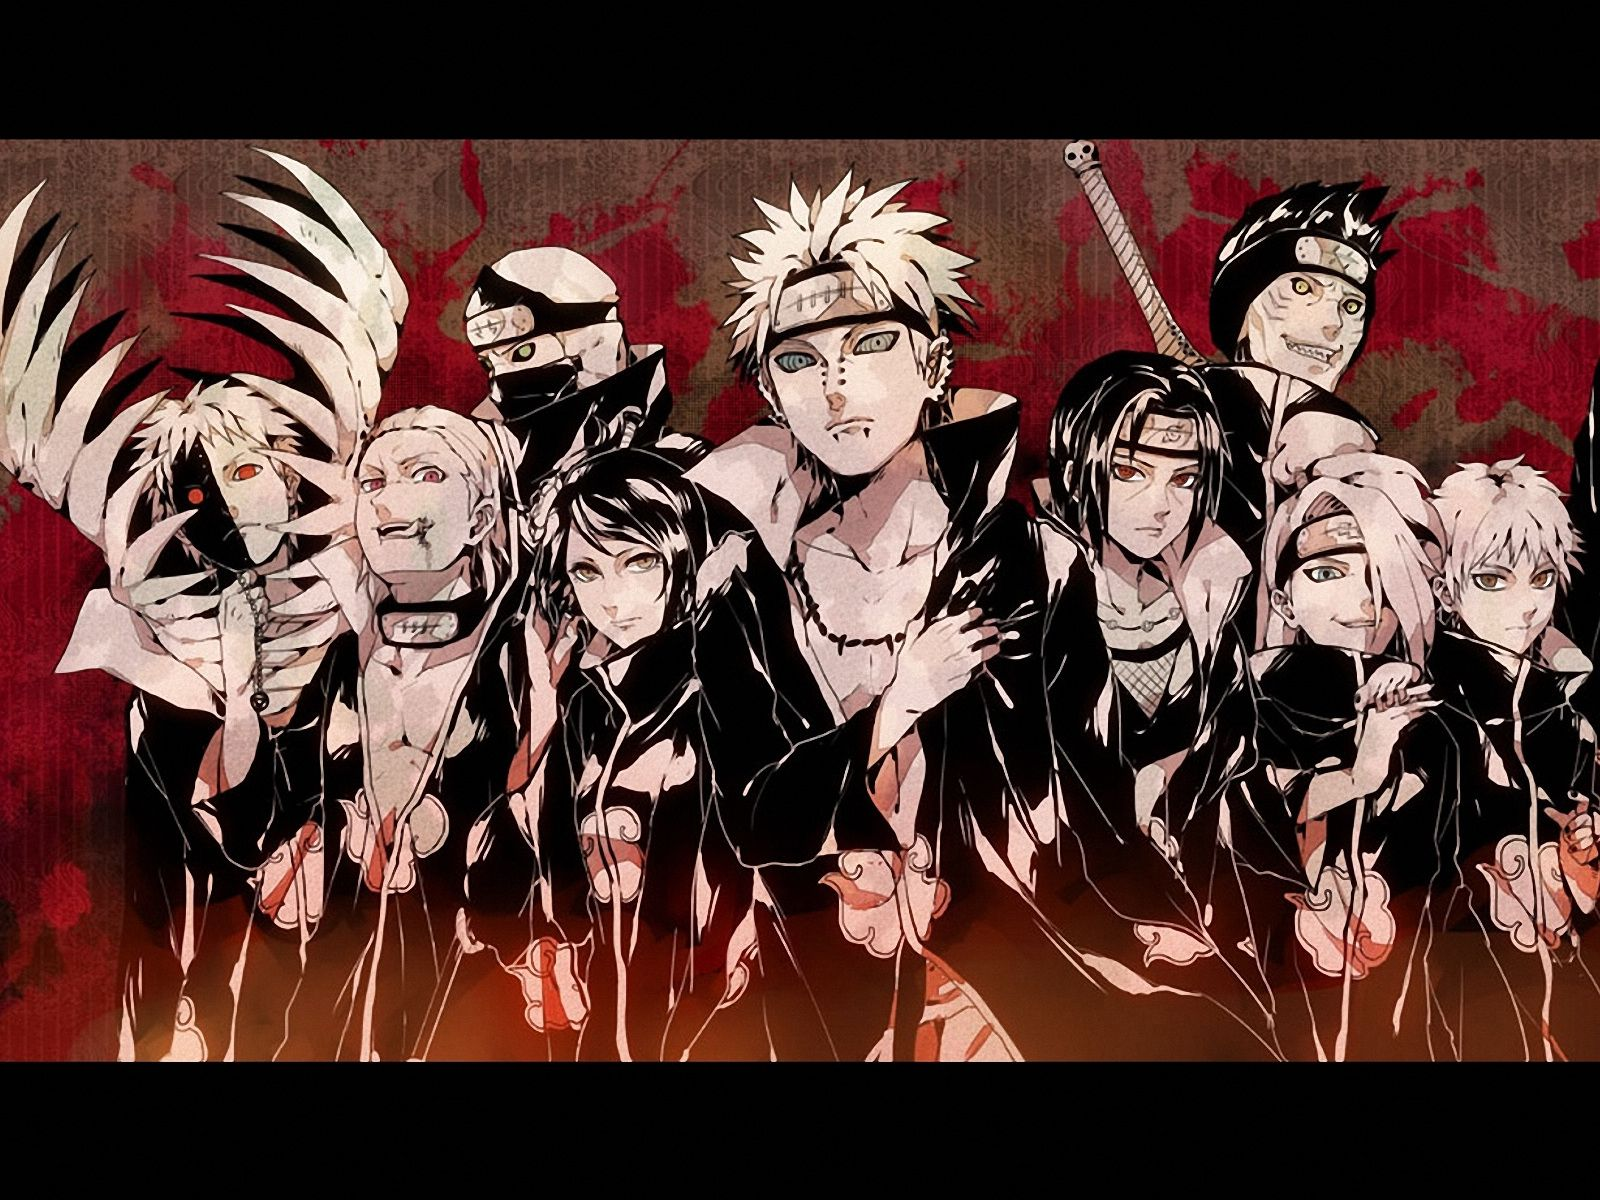 Http Wfiles Brothersoft Com N Naruto Wallpaper 1600x10 Jpg Naruto Wallpaper Wallpaper Naruto Shippuden Best Naruto Wallpapers